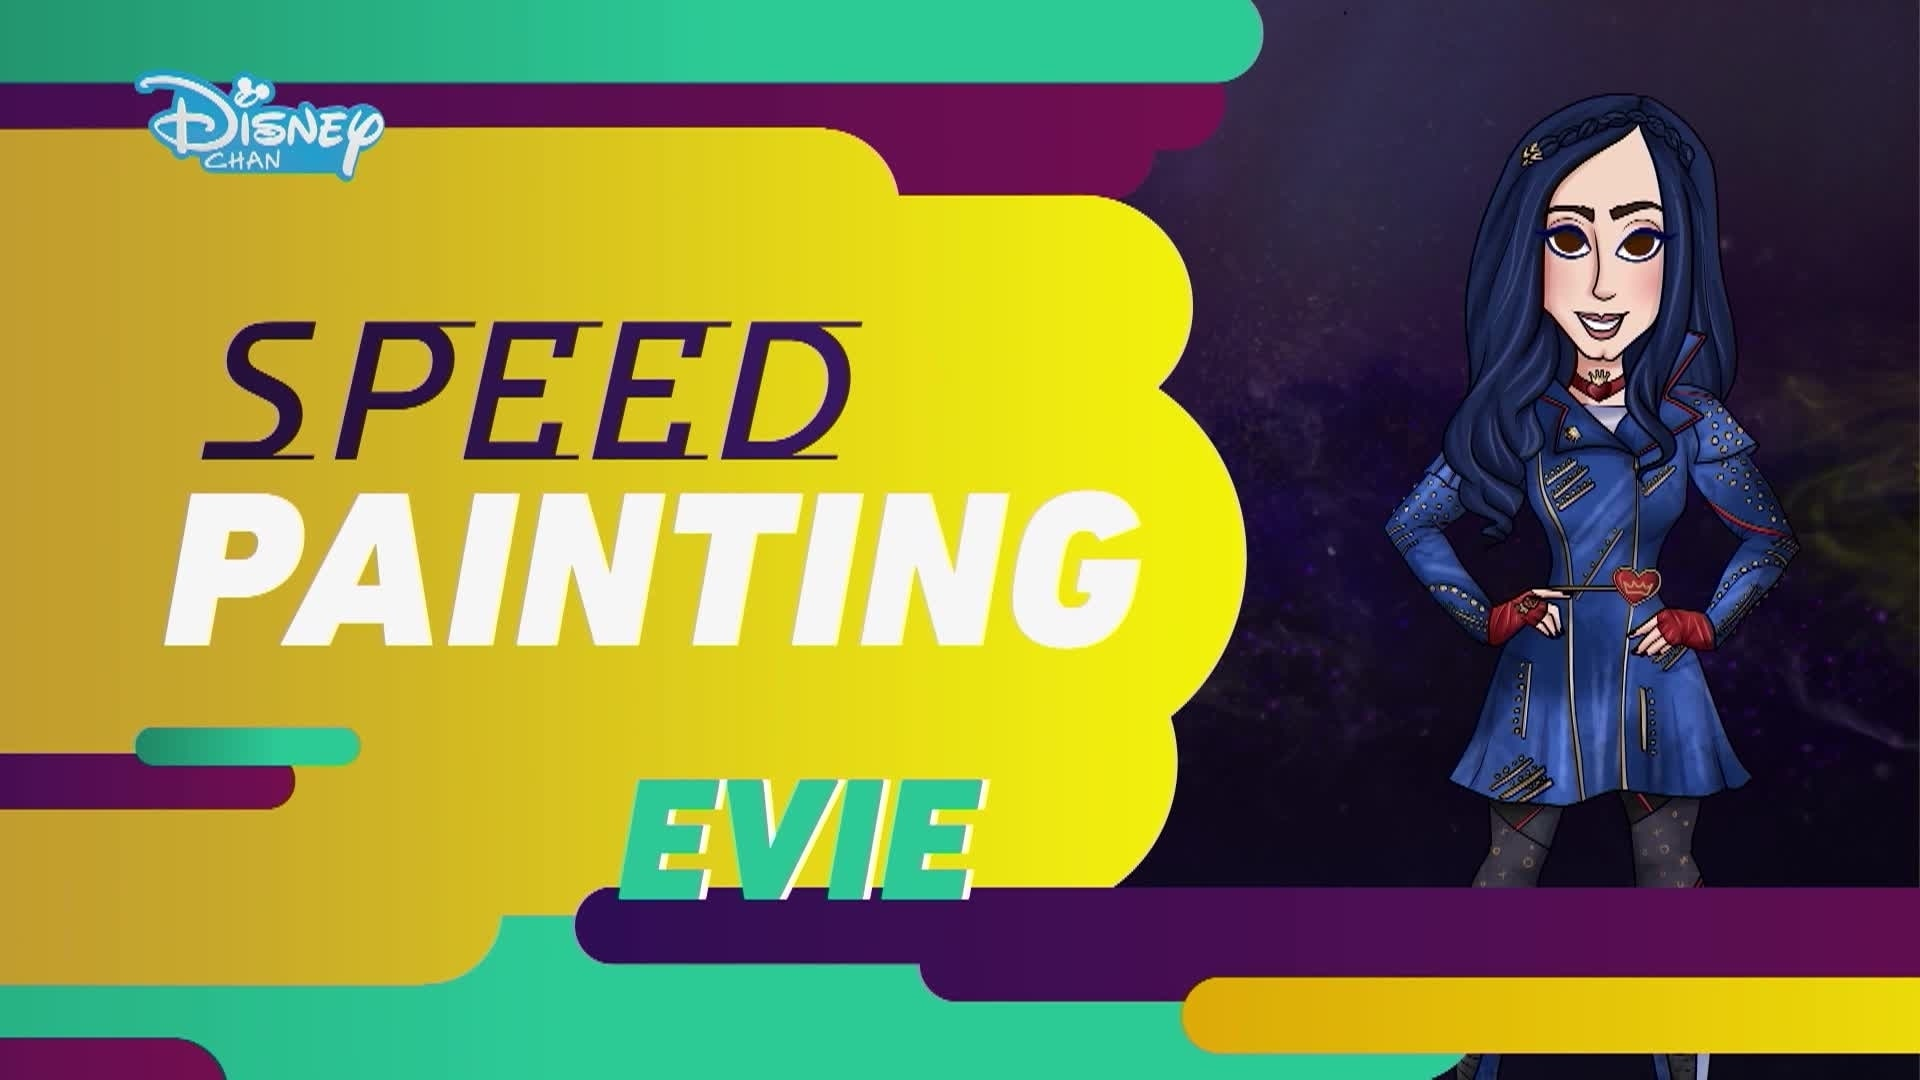 Os Descendentes 2: Speed Painting - O Estilo de Evie